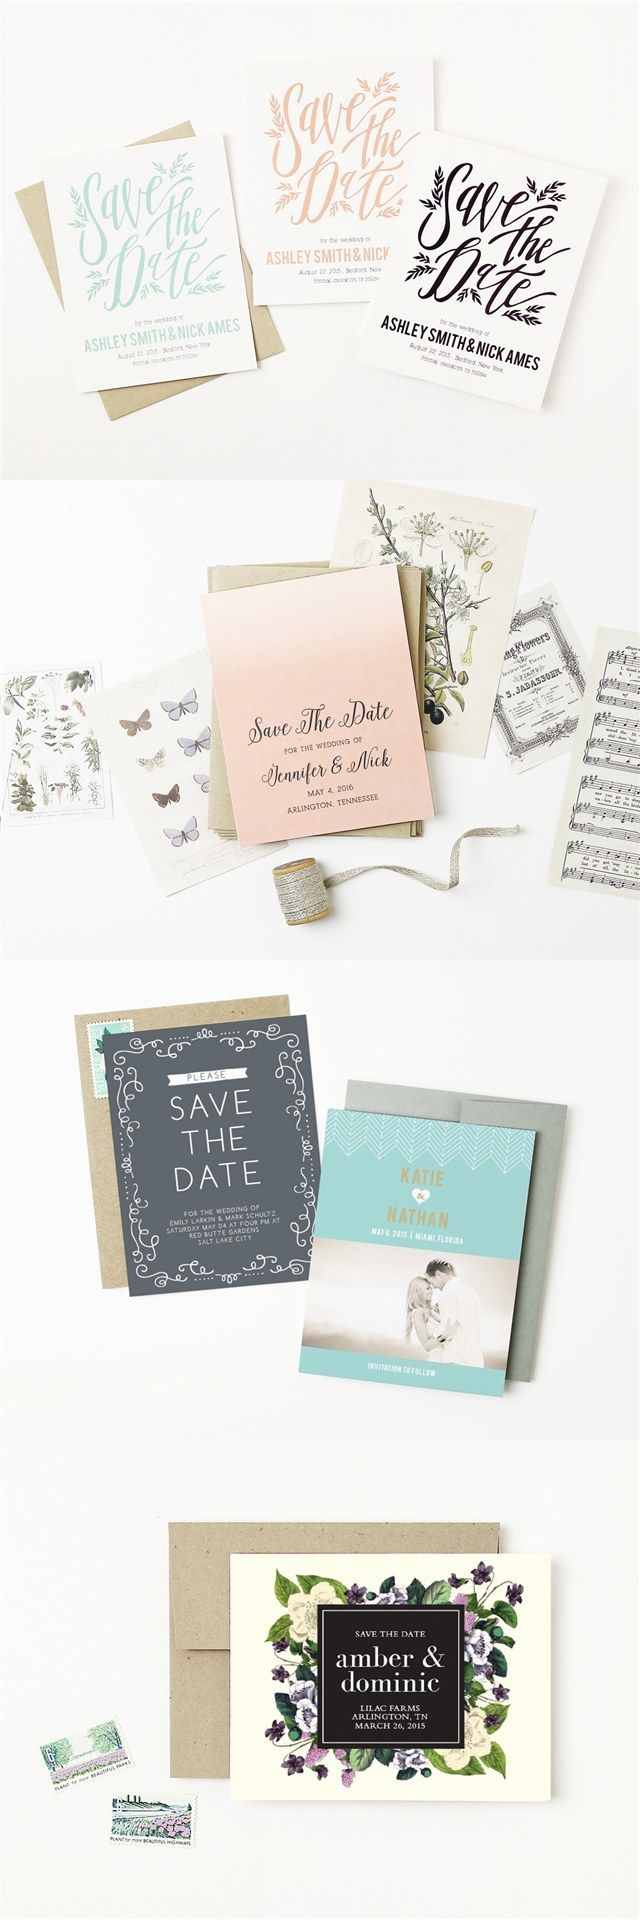 basic invite save the date invitations / http://www.deerpearlflowers.com/how-to-create-wedding-invitations-online/